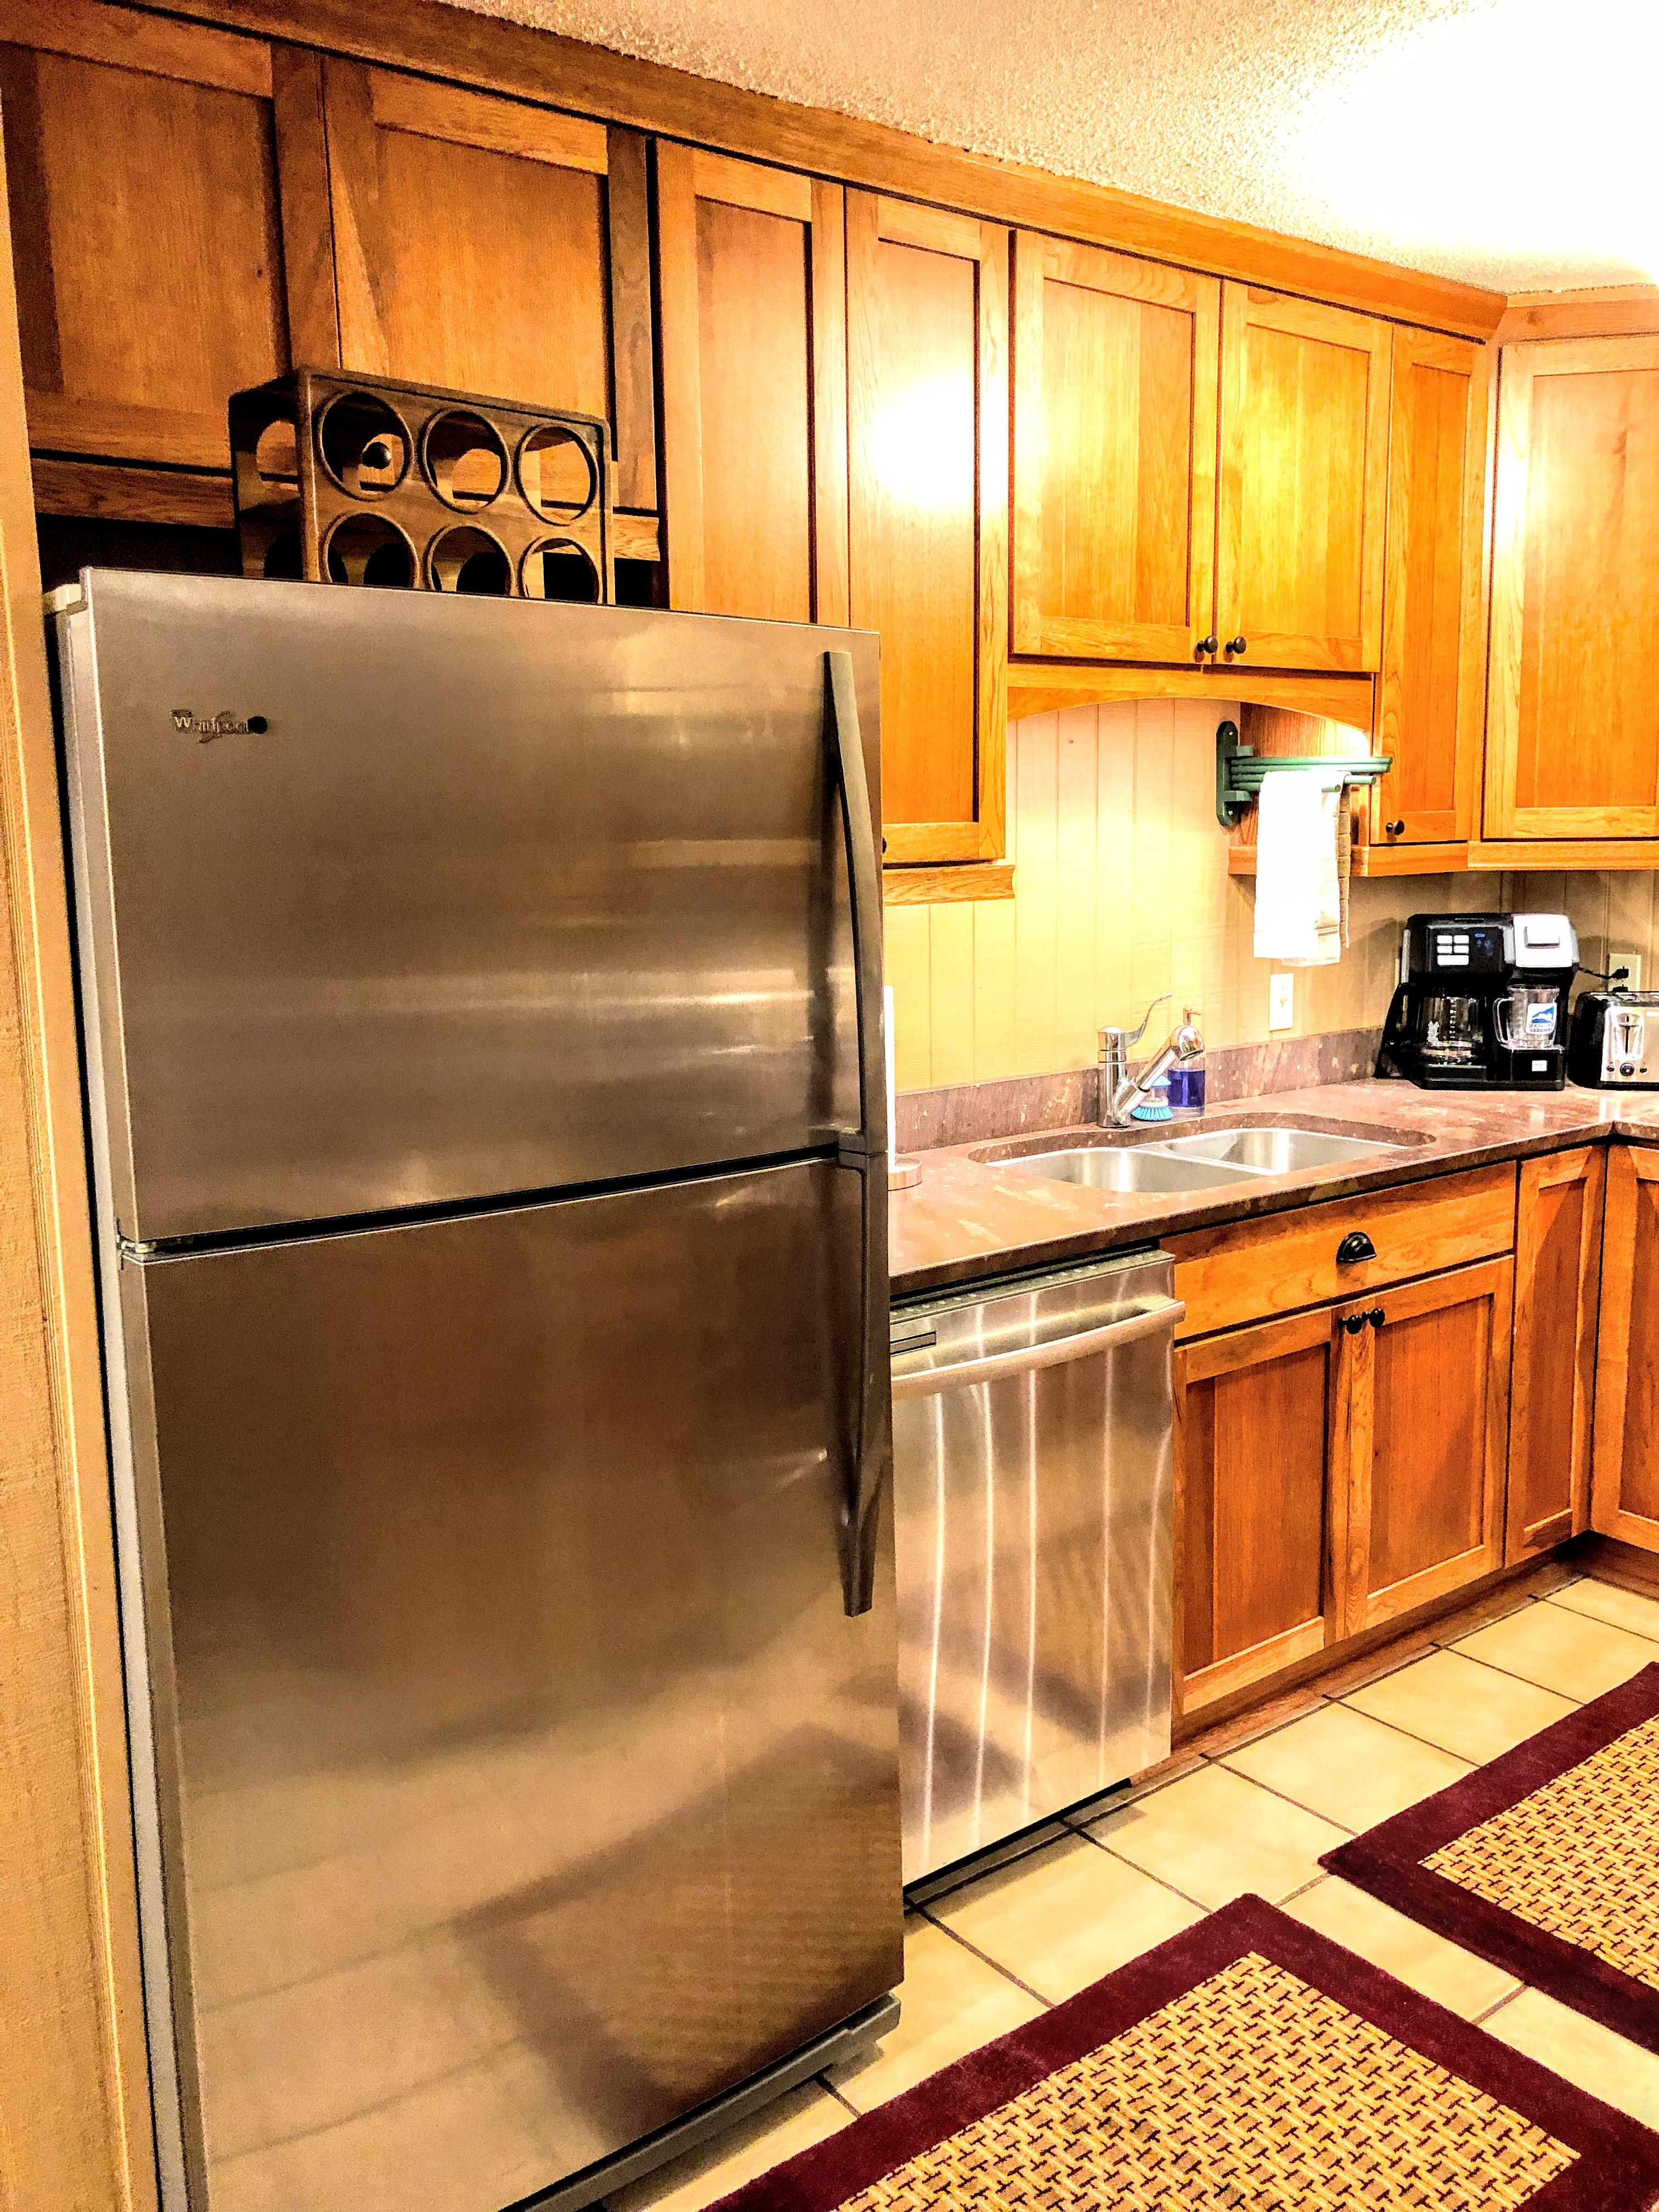 Full-sized stainless steel fridge, full-sized oven and electric cook top, toaster oven, and dishwasher